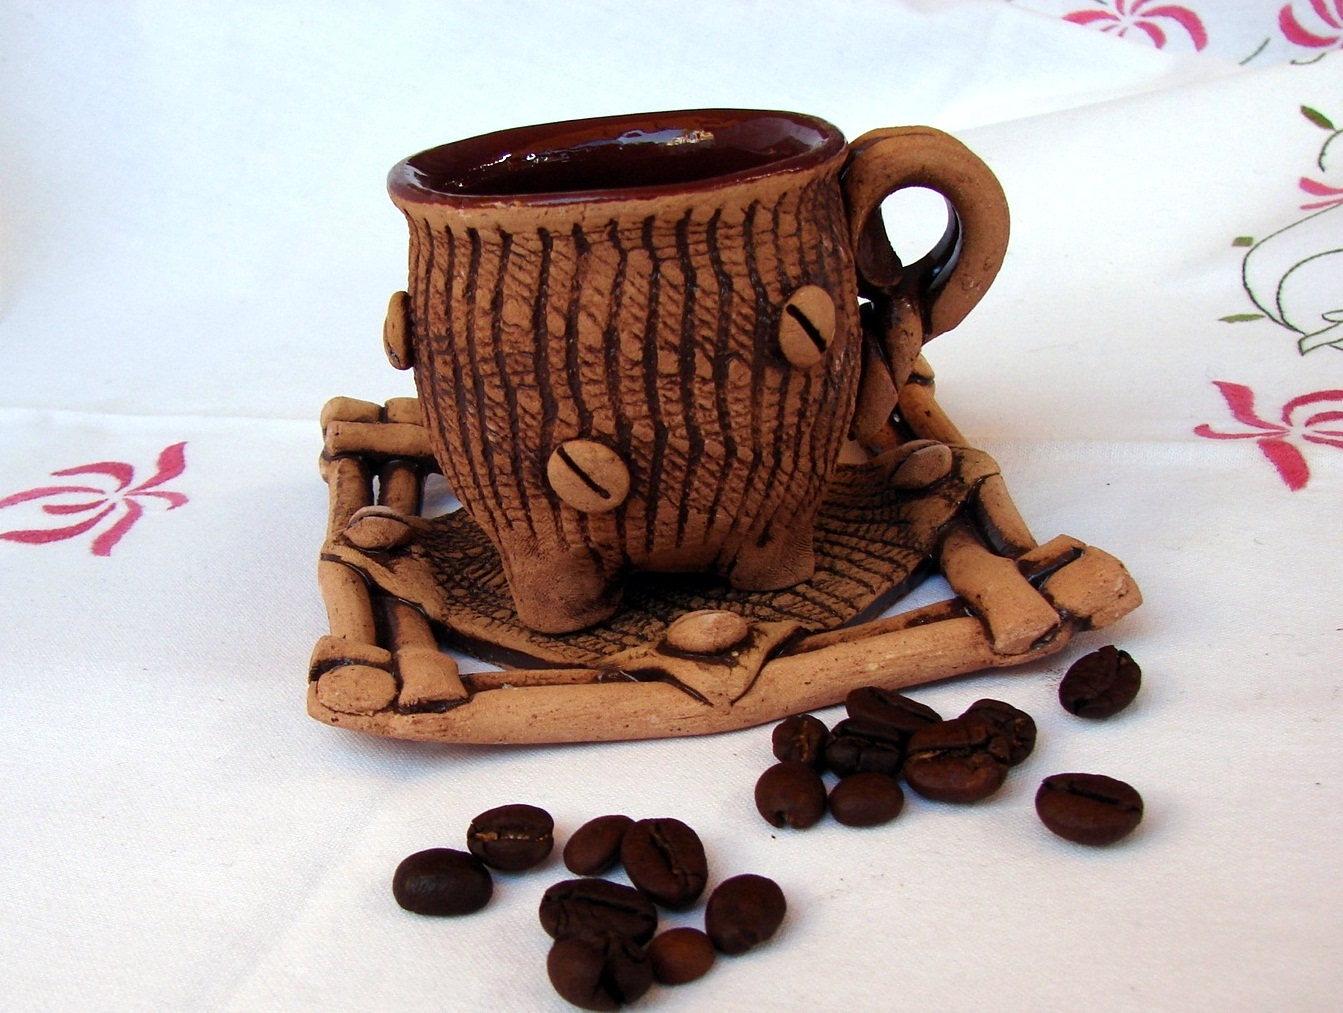 Ceramic Coffee Mug With Plate Espresso Or Arabic Coffee Cup